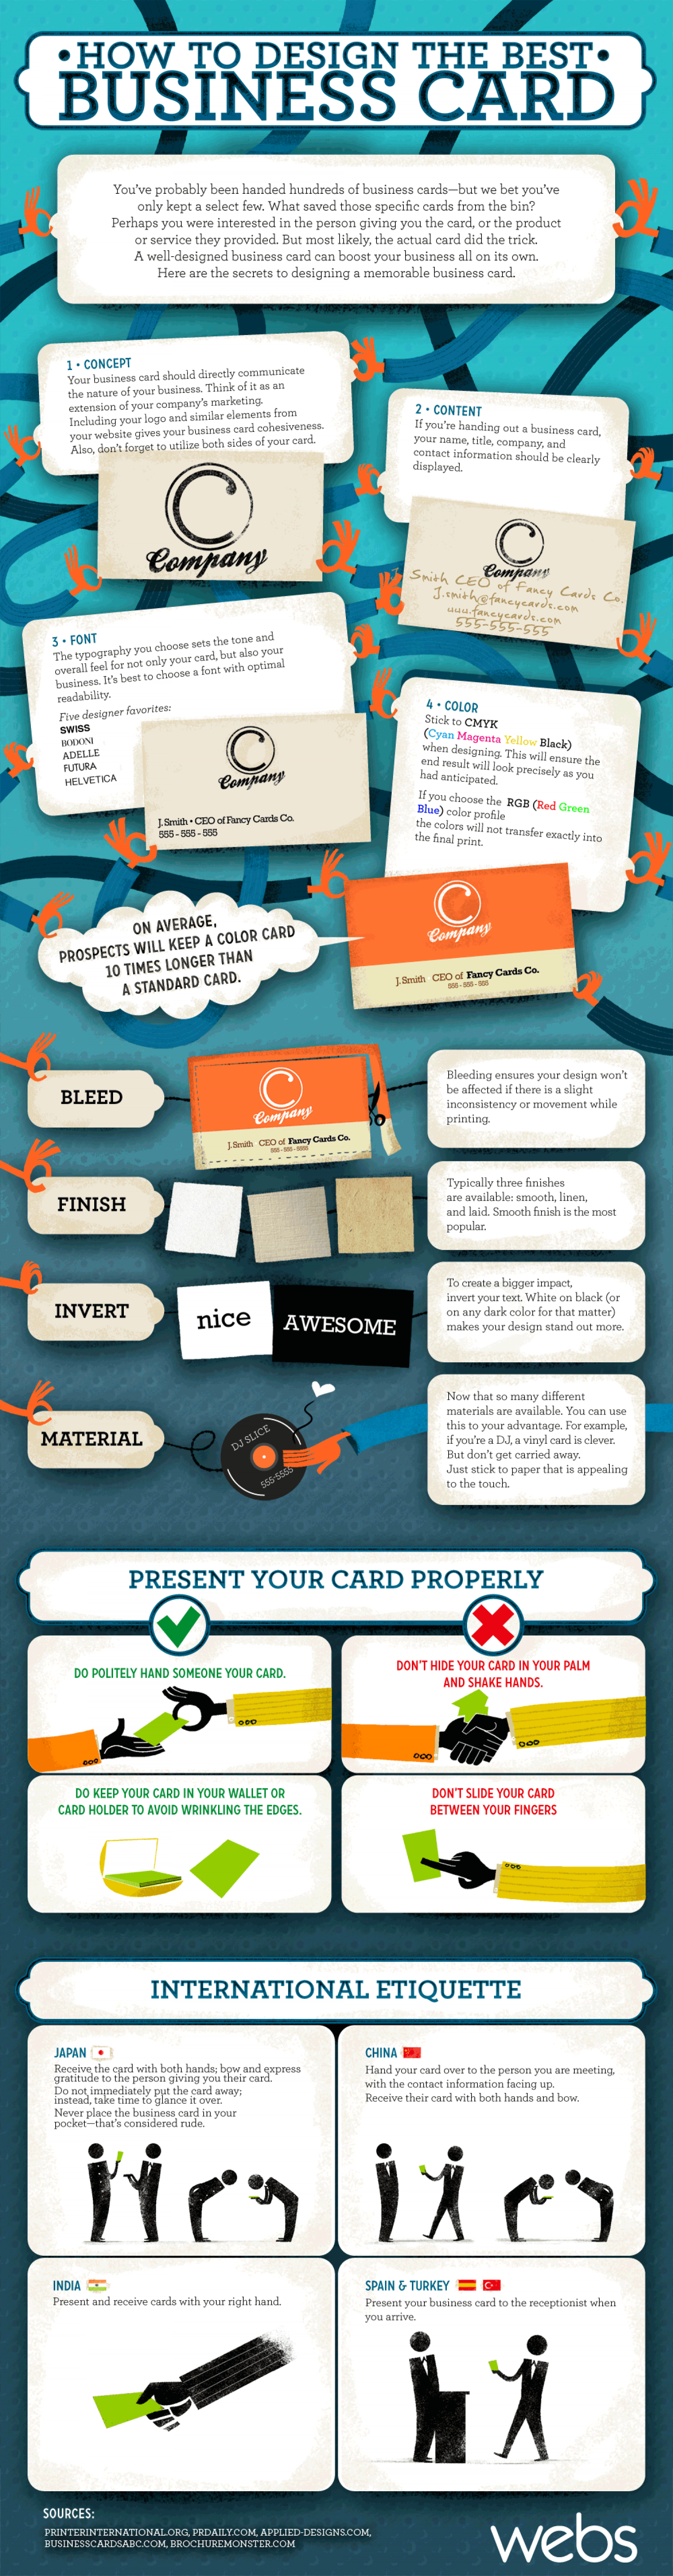 How to Design the Best Business Card  Infographic